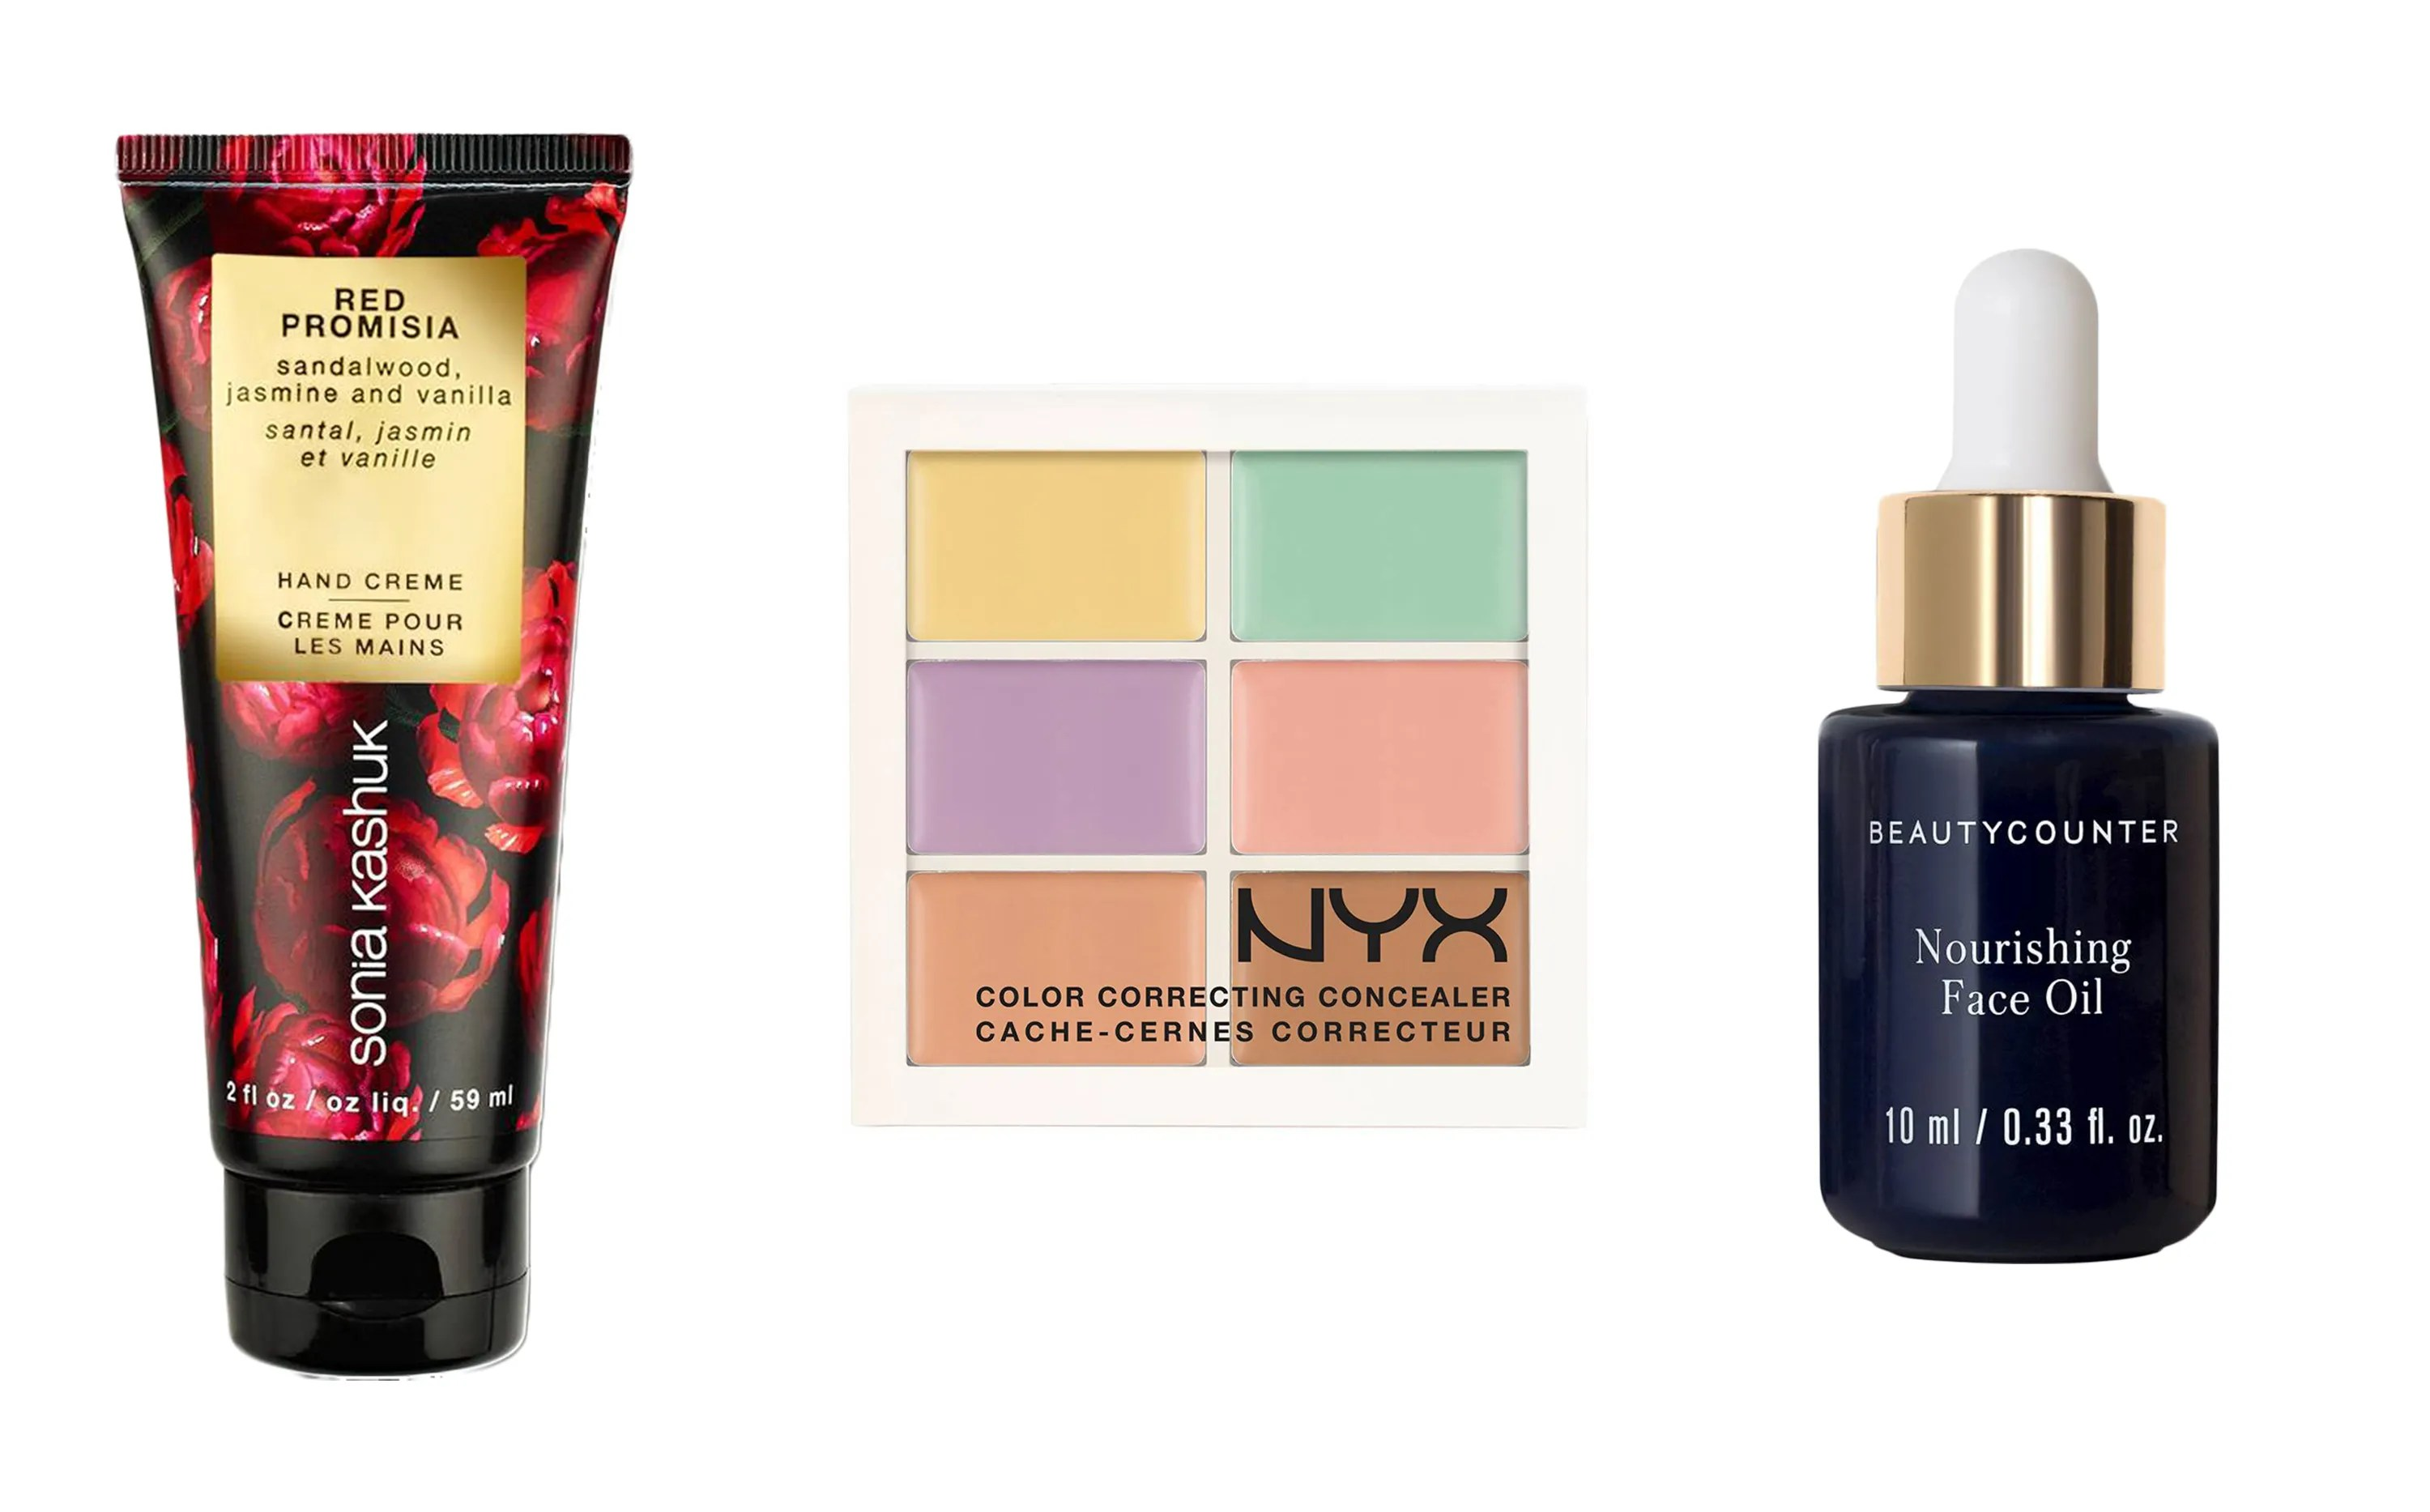 11 Best Makeup and Beauty Products at Target Allure